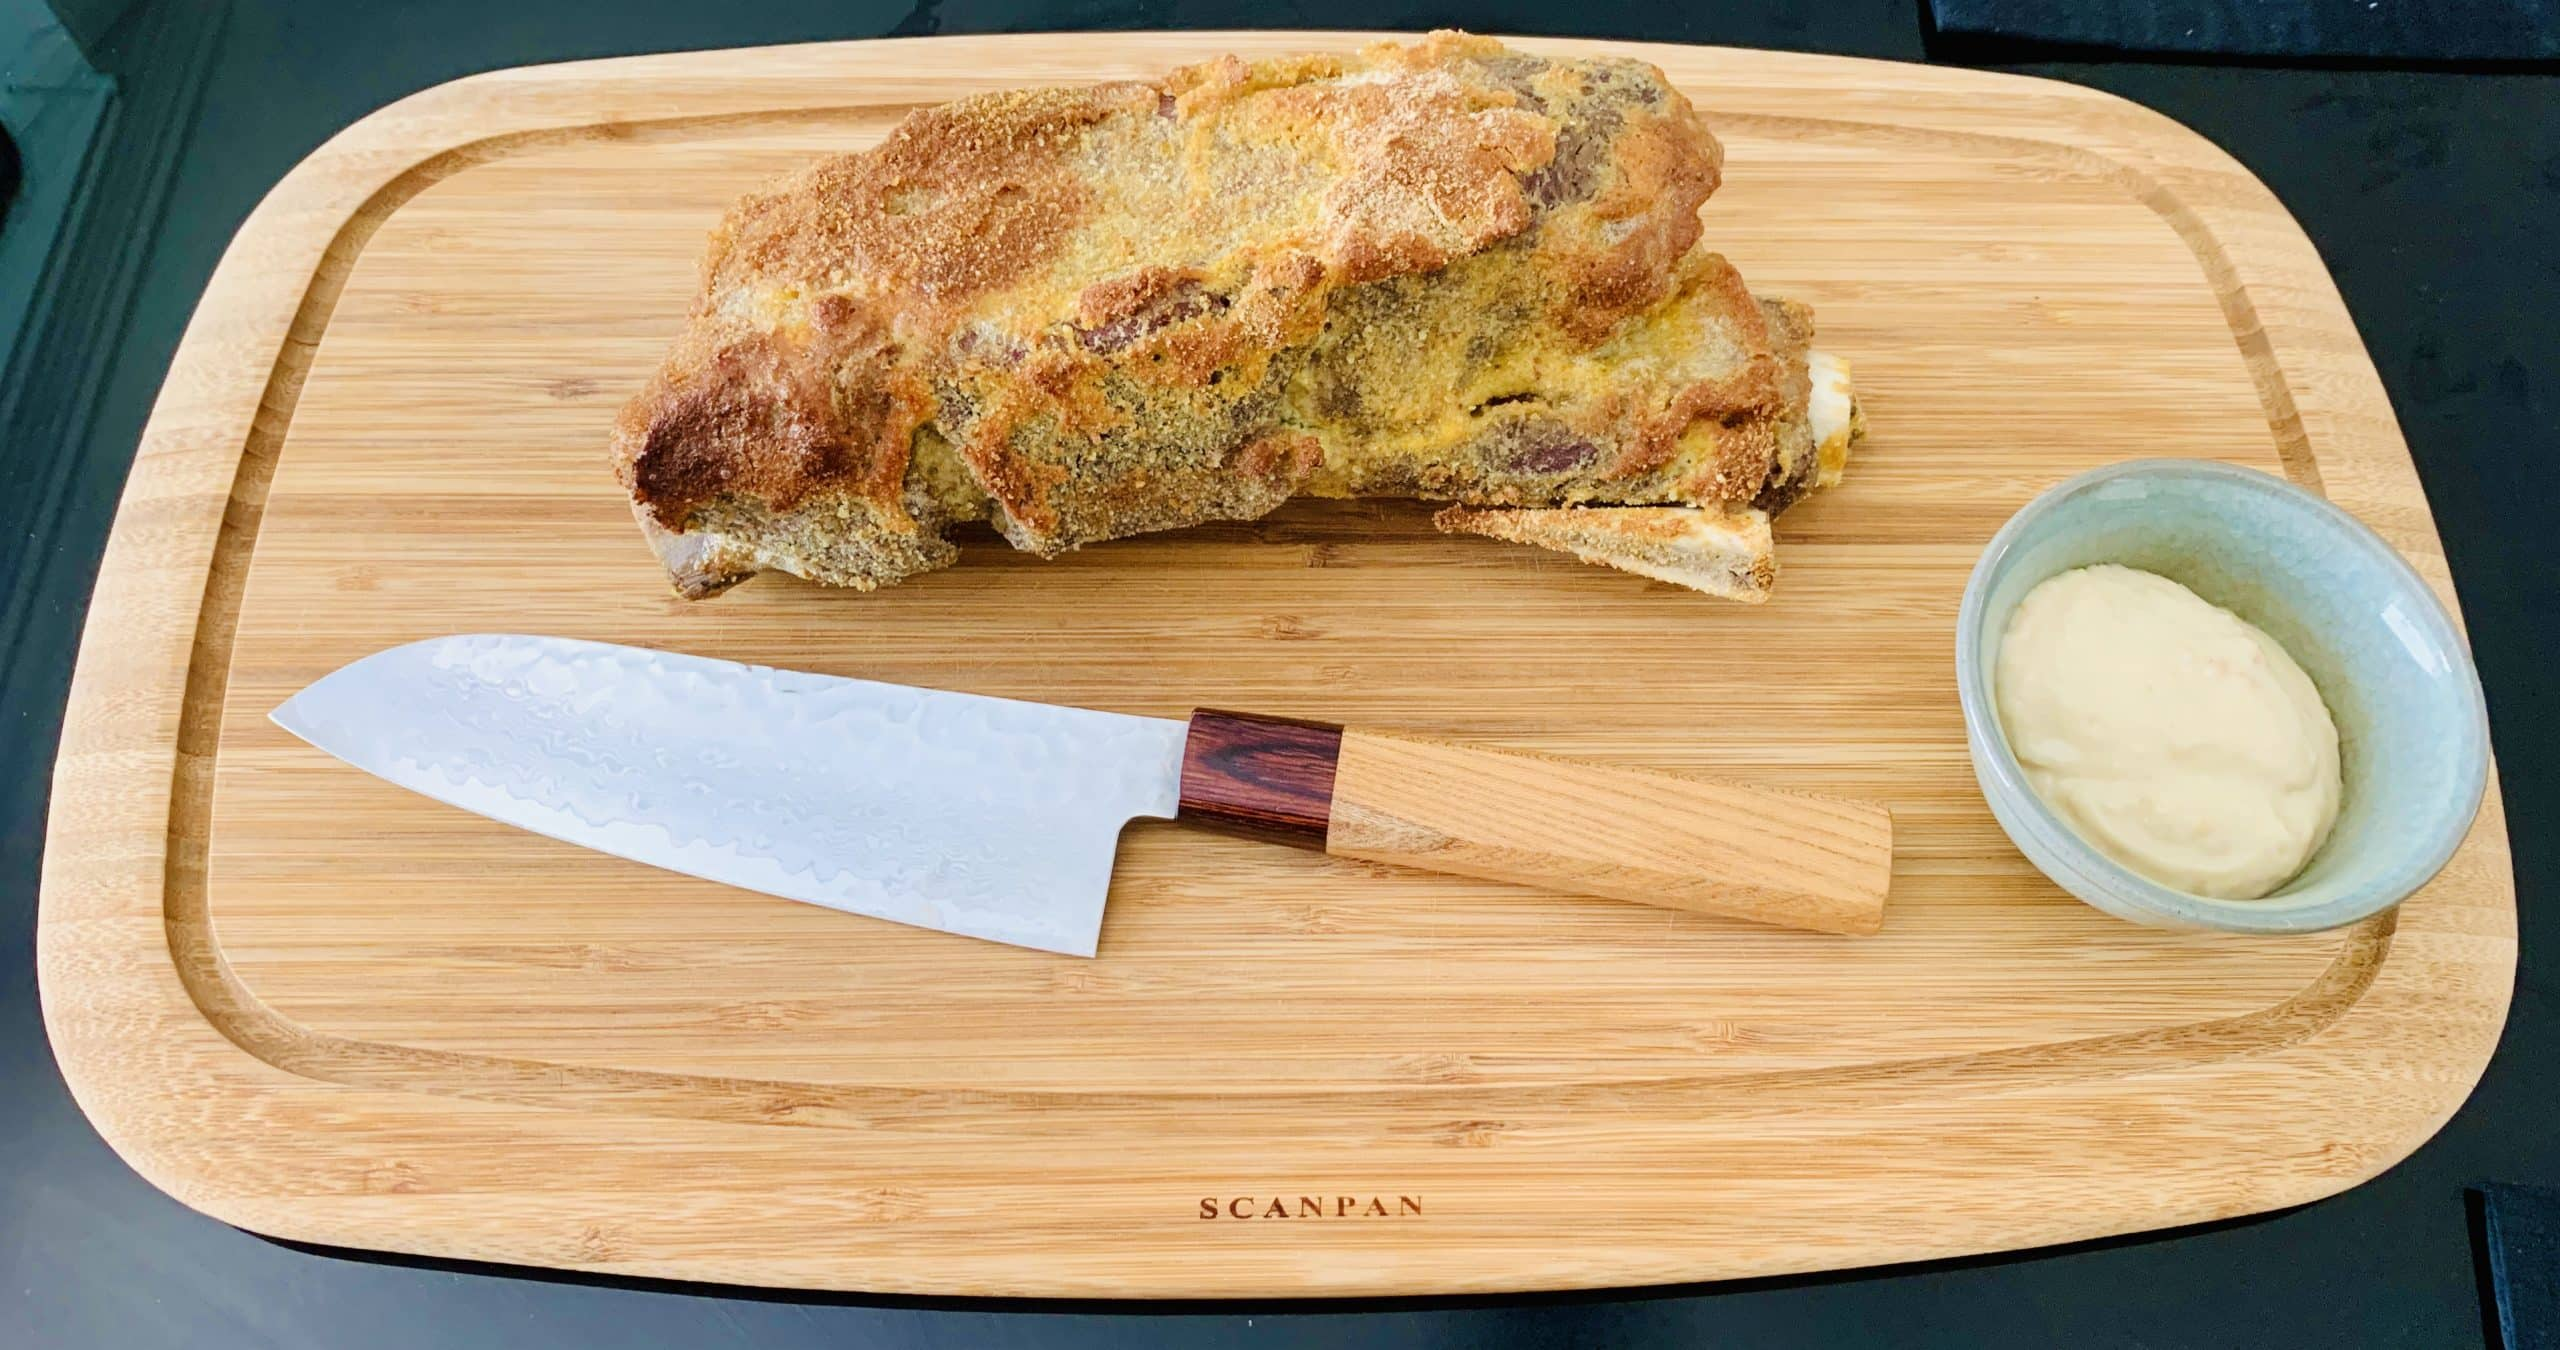 ChillaxBBQ Stay@Home Recipes #32 - Brined, Breaded & Baked Beef Rib